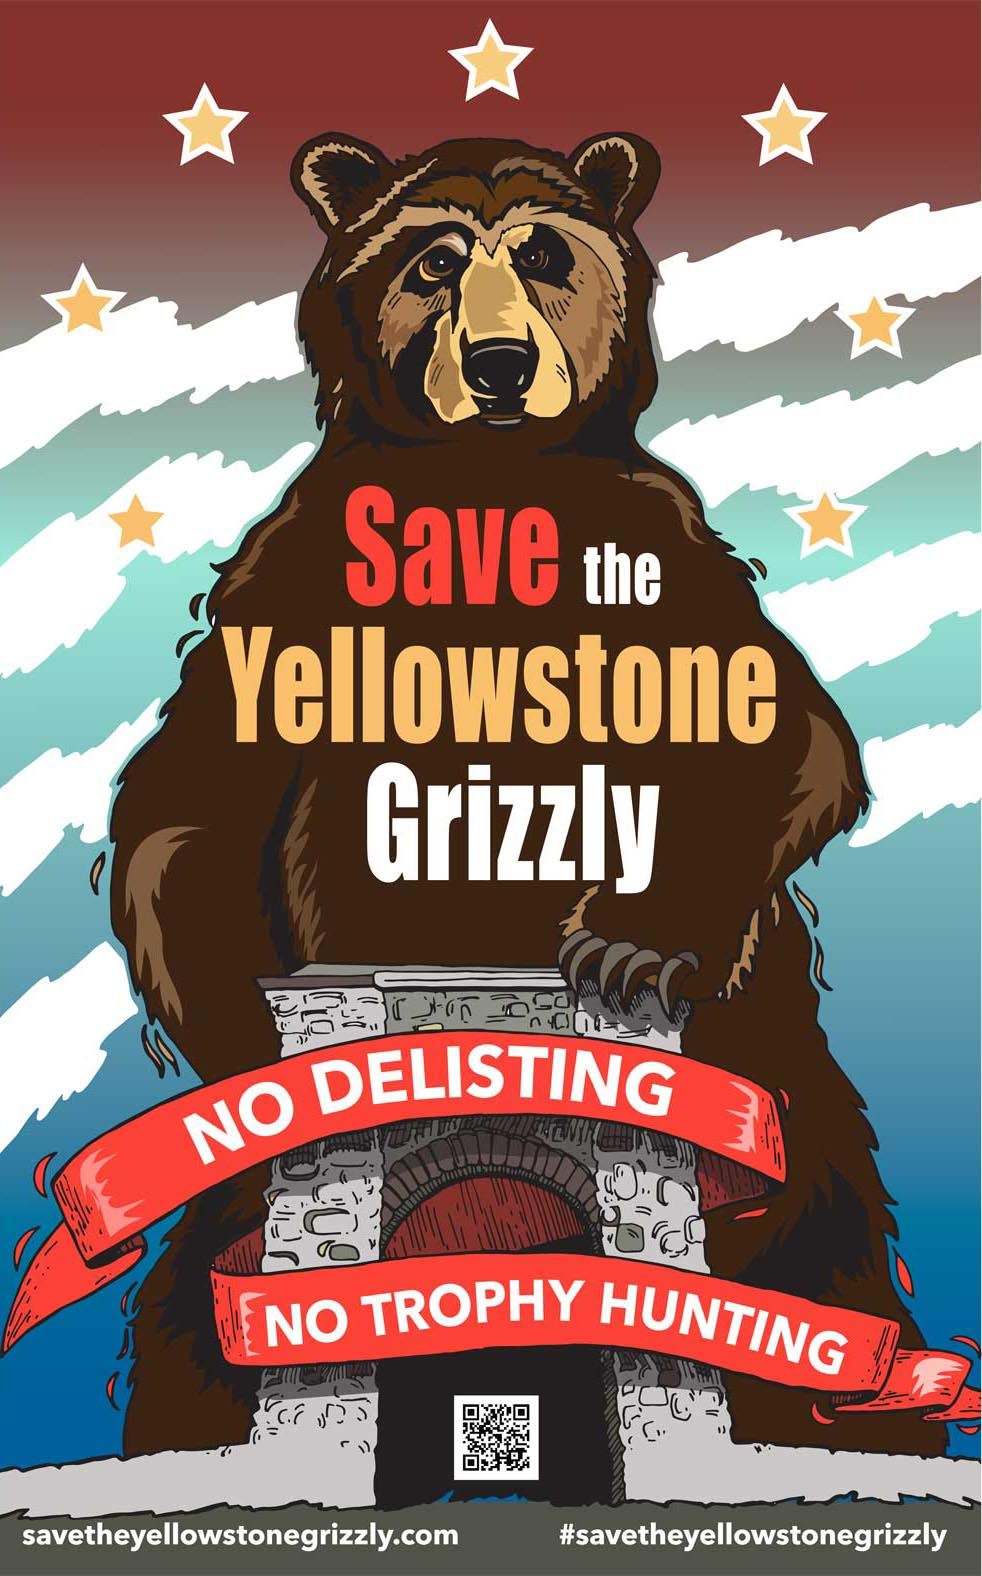 Save the Yellowstone Grizzly Poster Arch 11x17